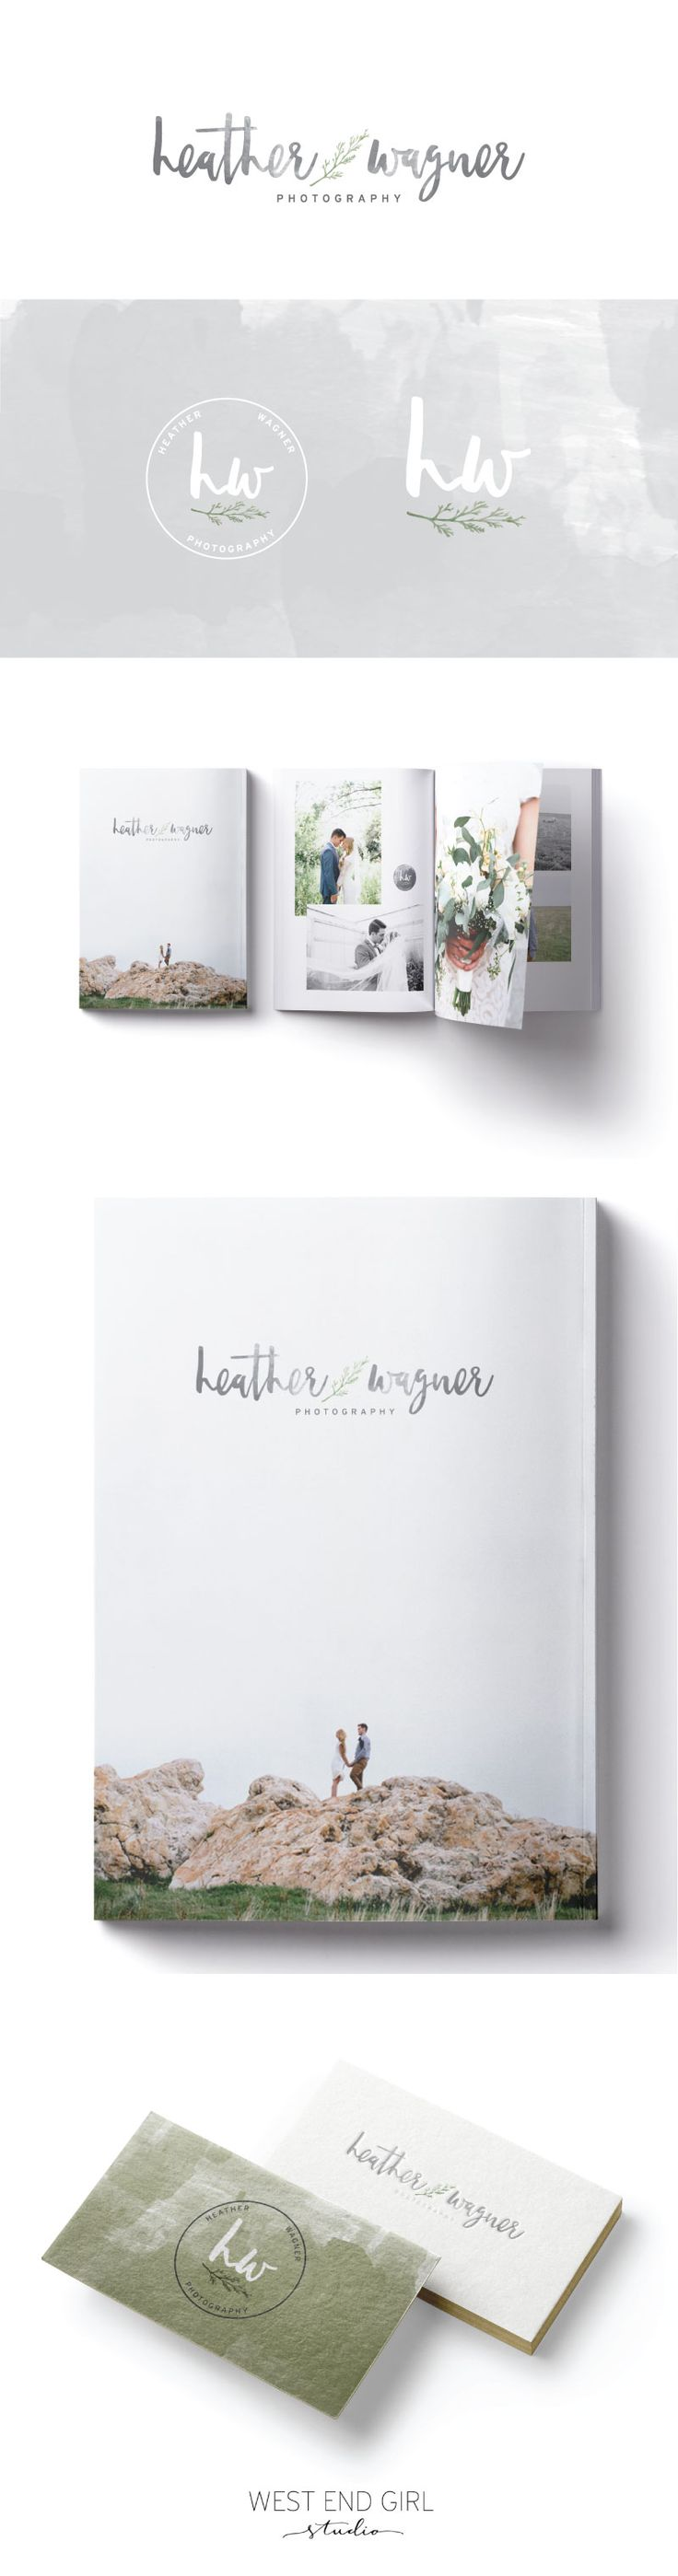 Branding, lifestyle blog design, graphic design, logo, business card design, design, photography logo, watercolor logo